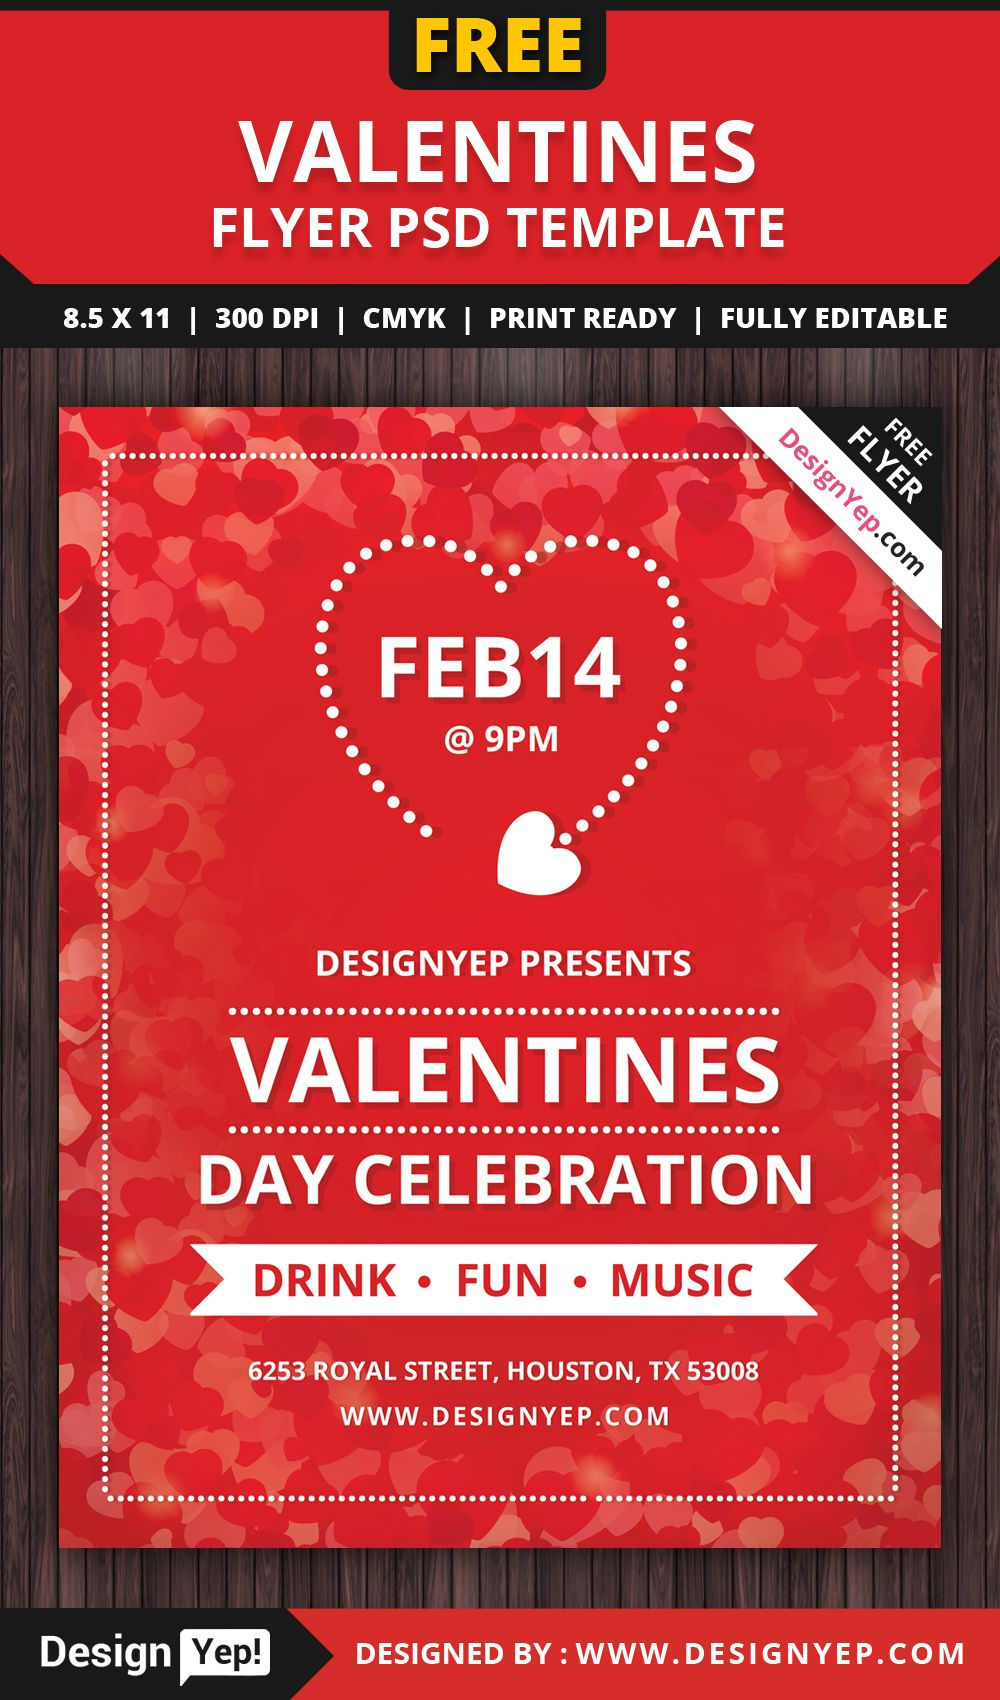 Valentines Day Flyer Free PSD Template | Free Flyers | Pinterest